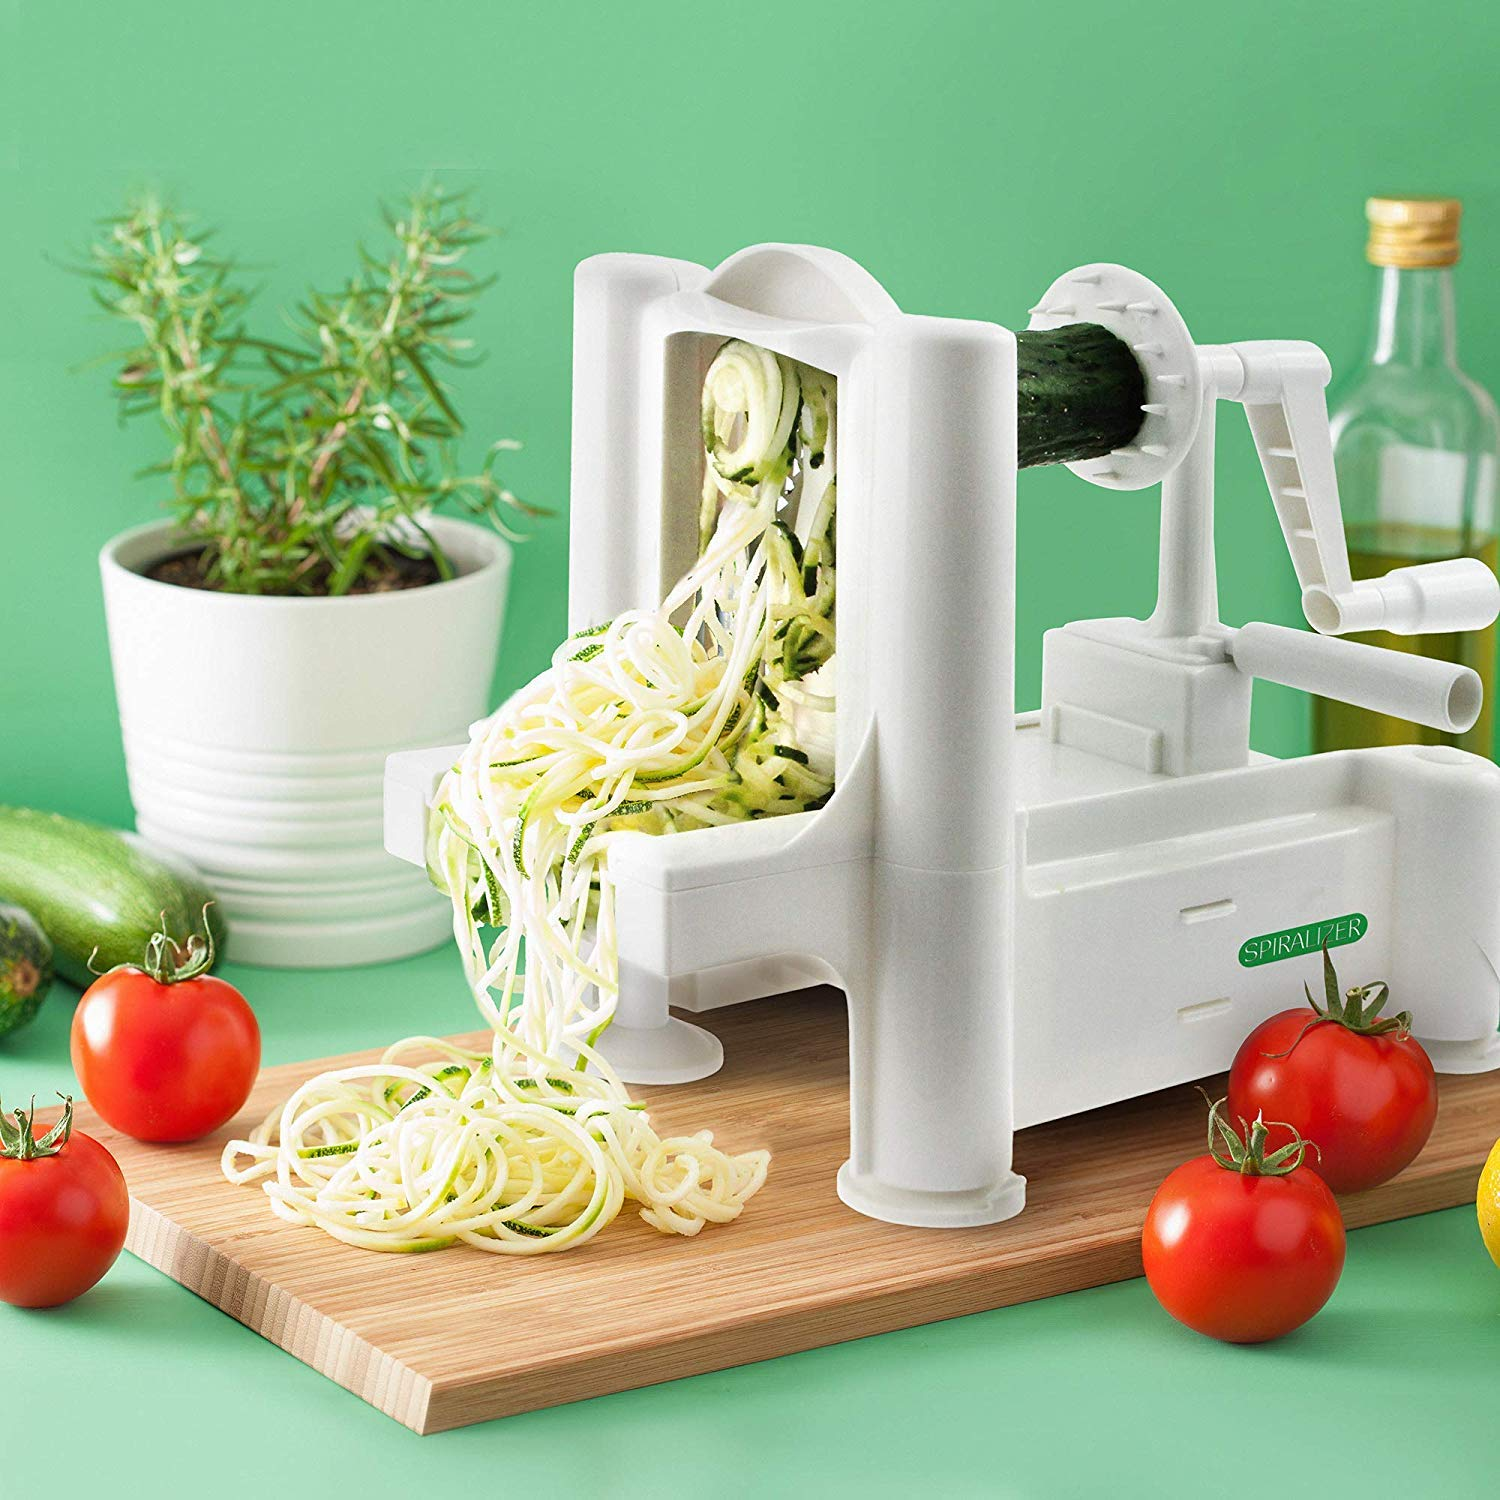 Spiralizer 5-Blade Vegetable Slicer, Strongest-and-Heaviest Spiral Slicer,  Best Veggie Pasta Spaghetti Maker for Keto/Paleo/Gluten-Free, Comes with 4